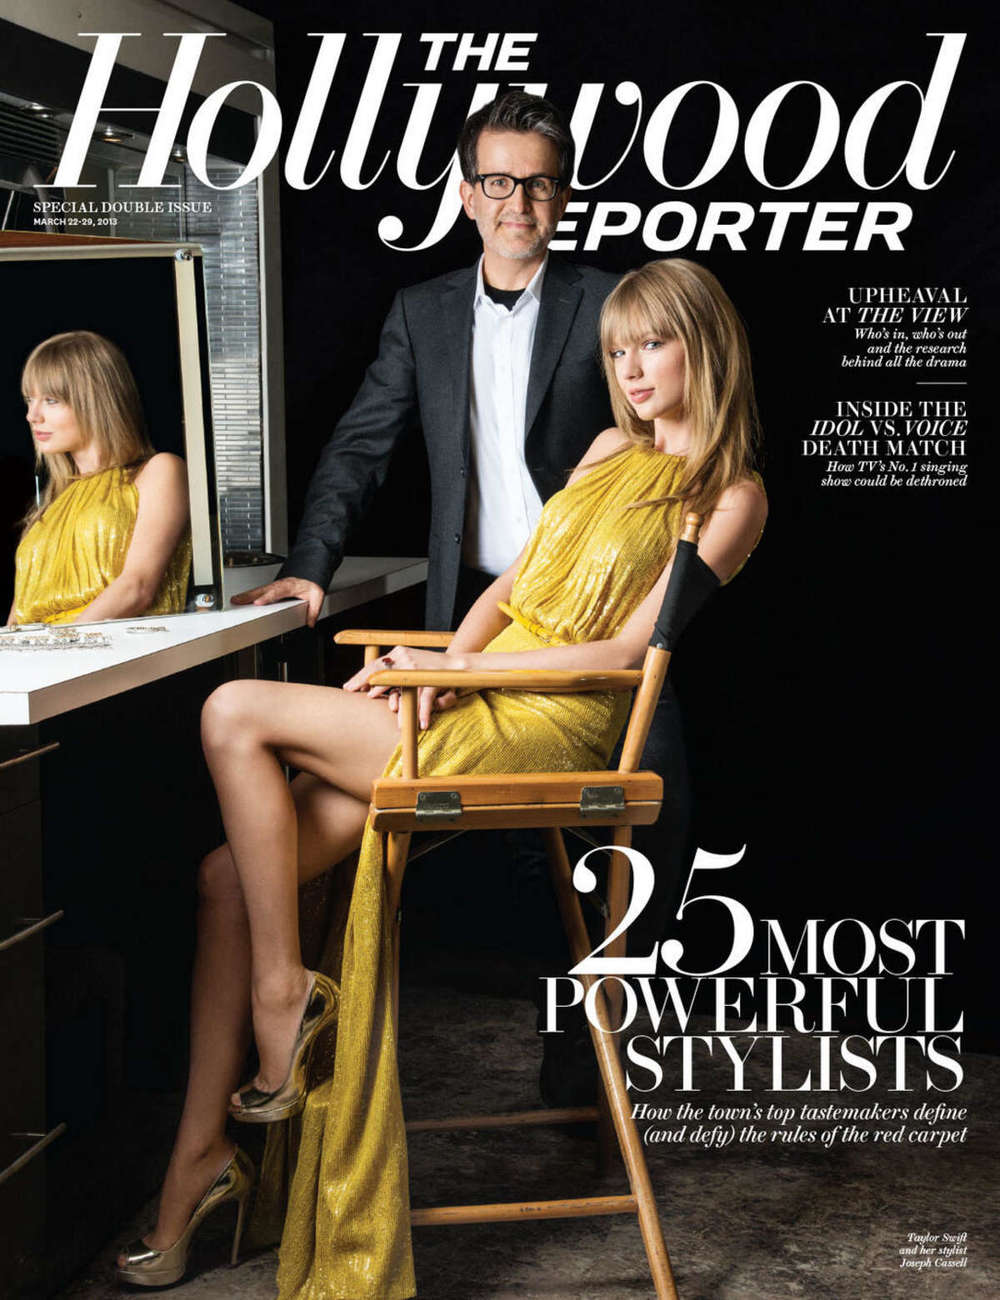 Taylor-Swift---The-Hollywood-Reporter-Magazine-Cover---March-2013--01.jpg